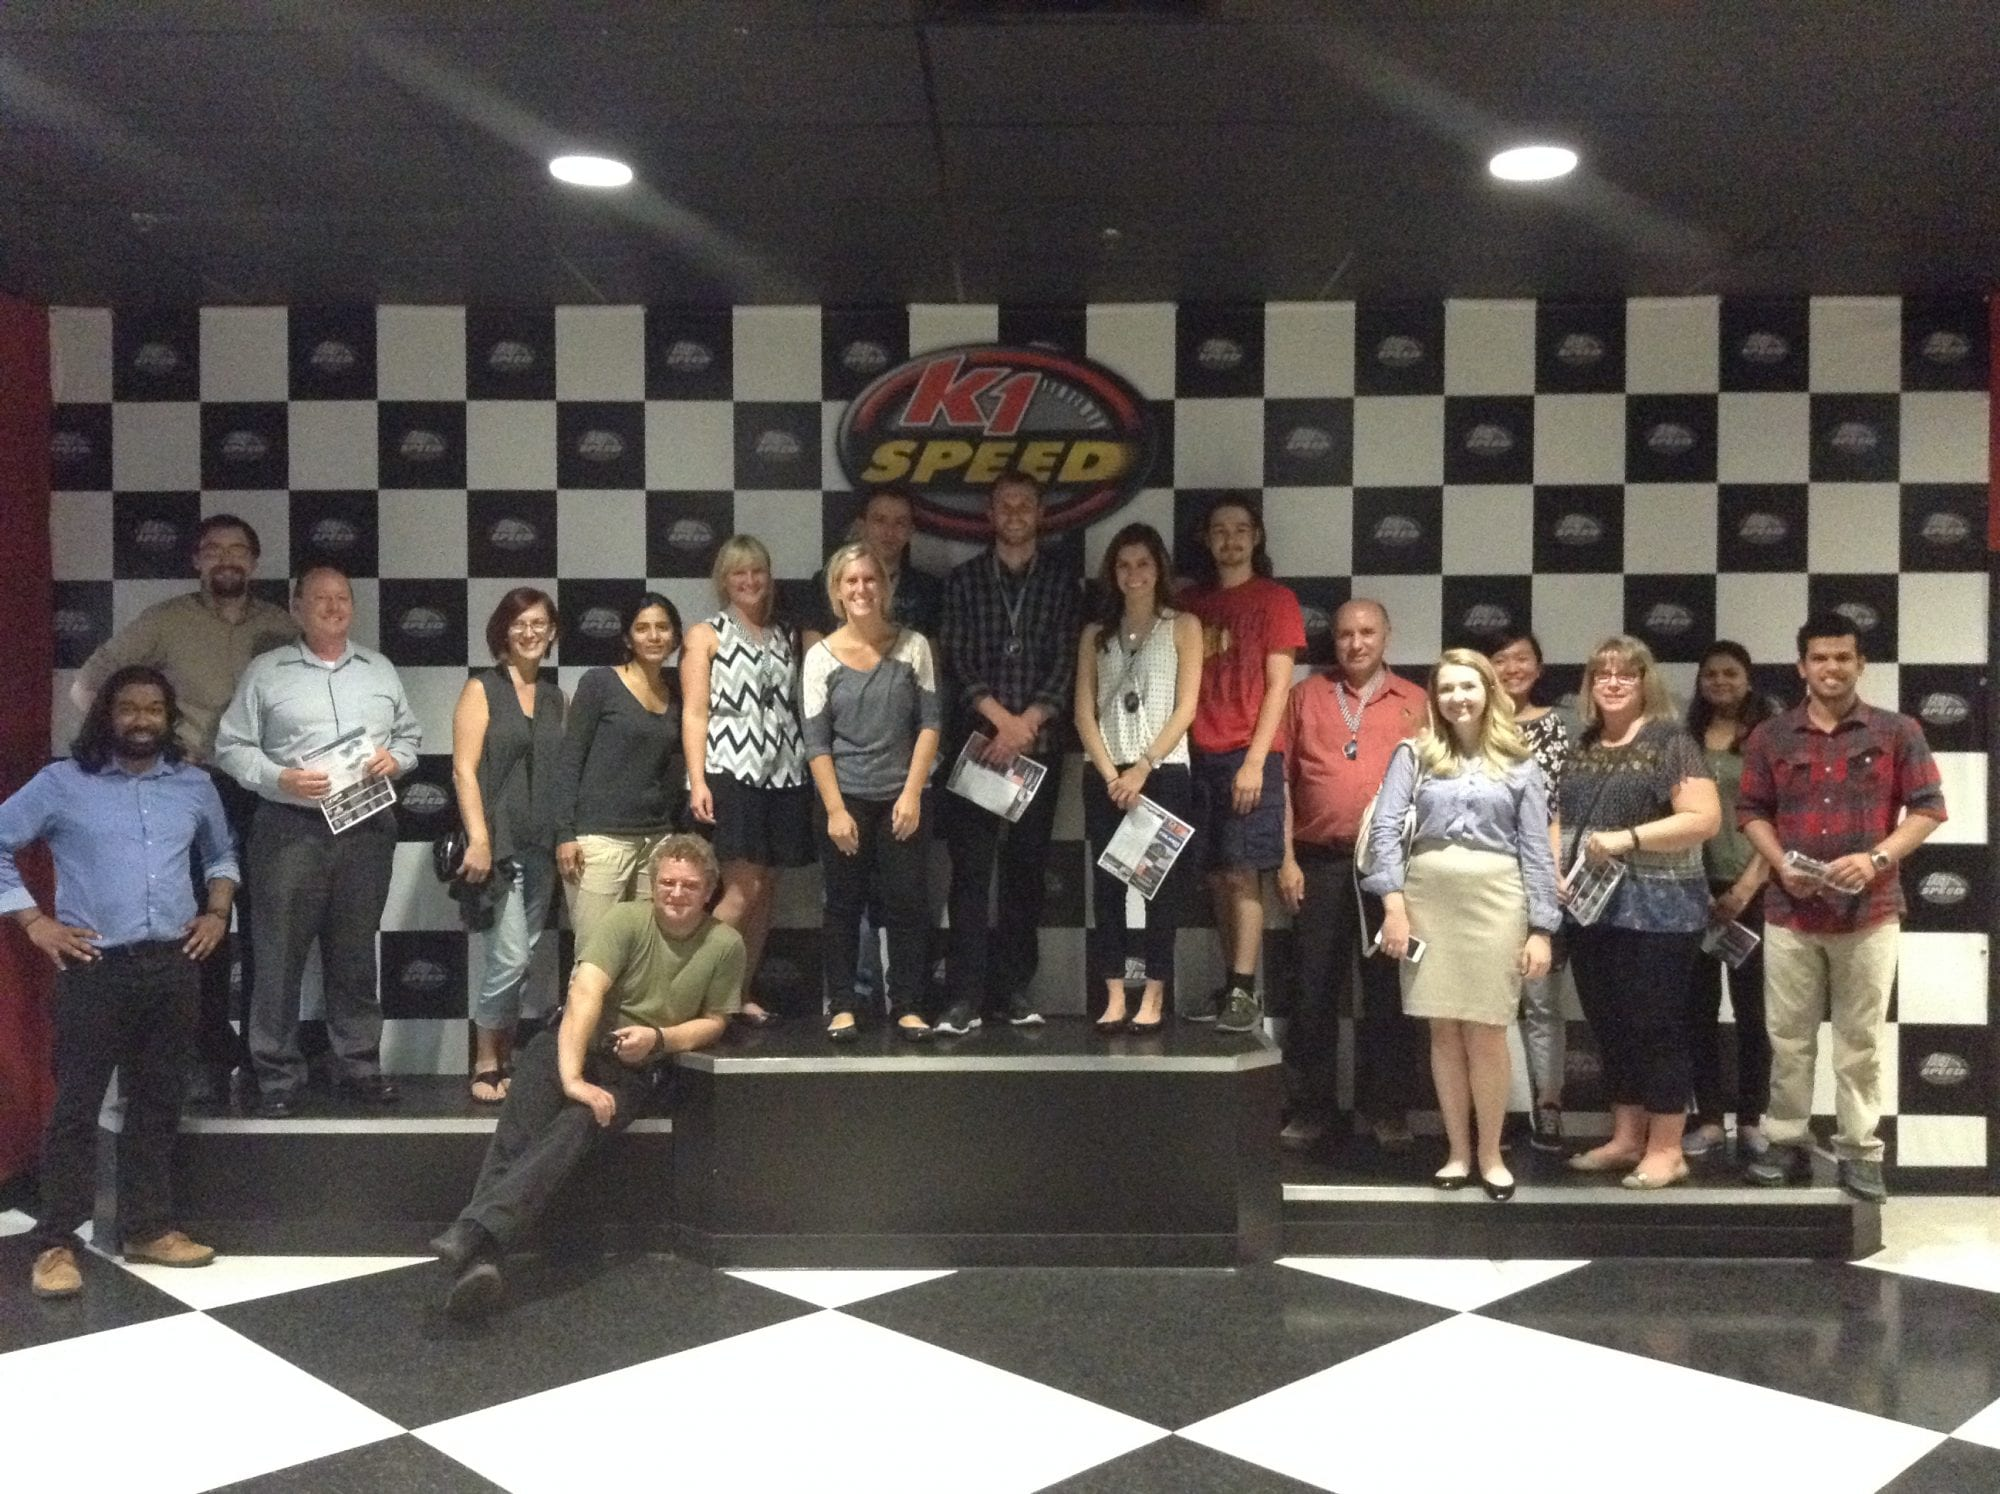 PCMI Chicago company outing at K1 Speed Indoor Go-Kart Racing